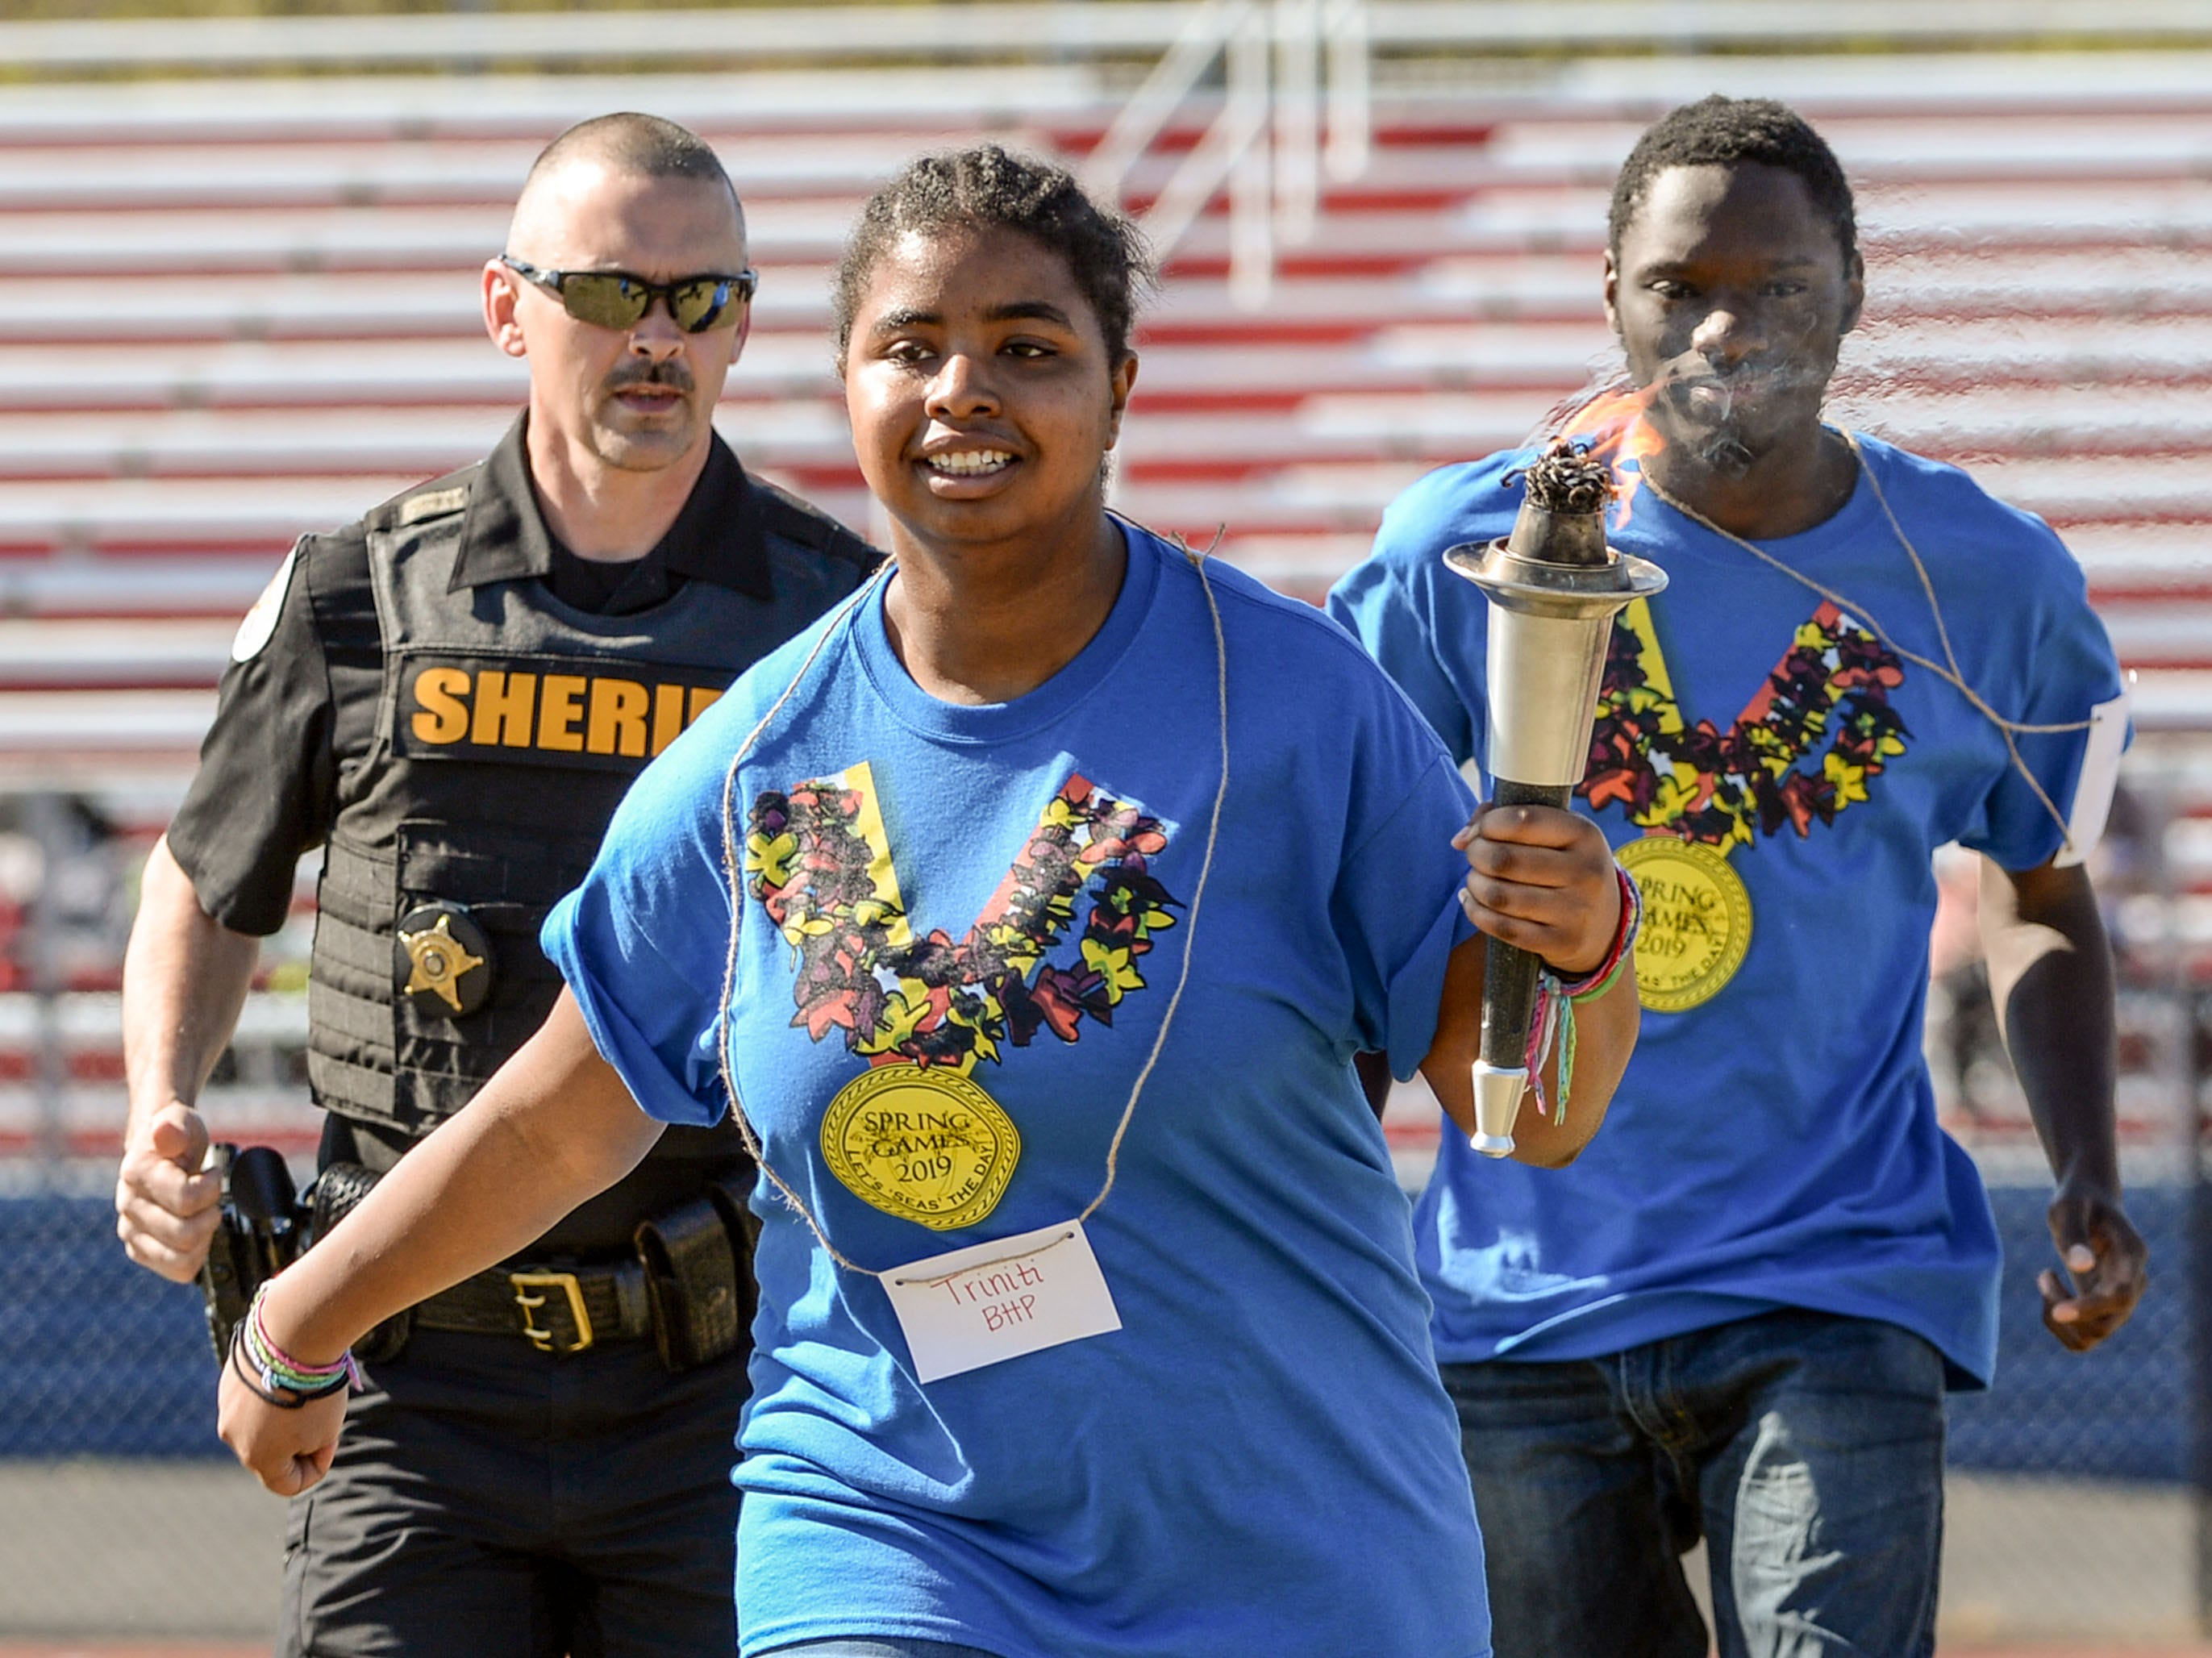 Capt. Bill Vaughn, left, of the Anderson County Sheriff's Office escorts athlete Triniti Fields, middle, and Jalen Martin, right, students from Belton-Honea Path High School, lighting the flame for the Special Olympics South Carolina Area 14 Spring Games at Marlee Gambrell field at Belton-Honea Path High School Wednesday.